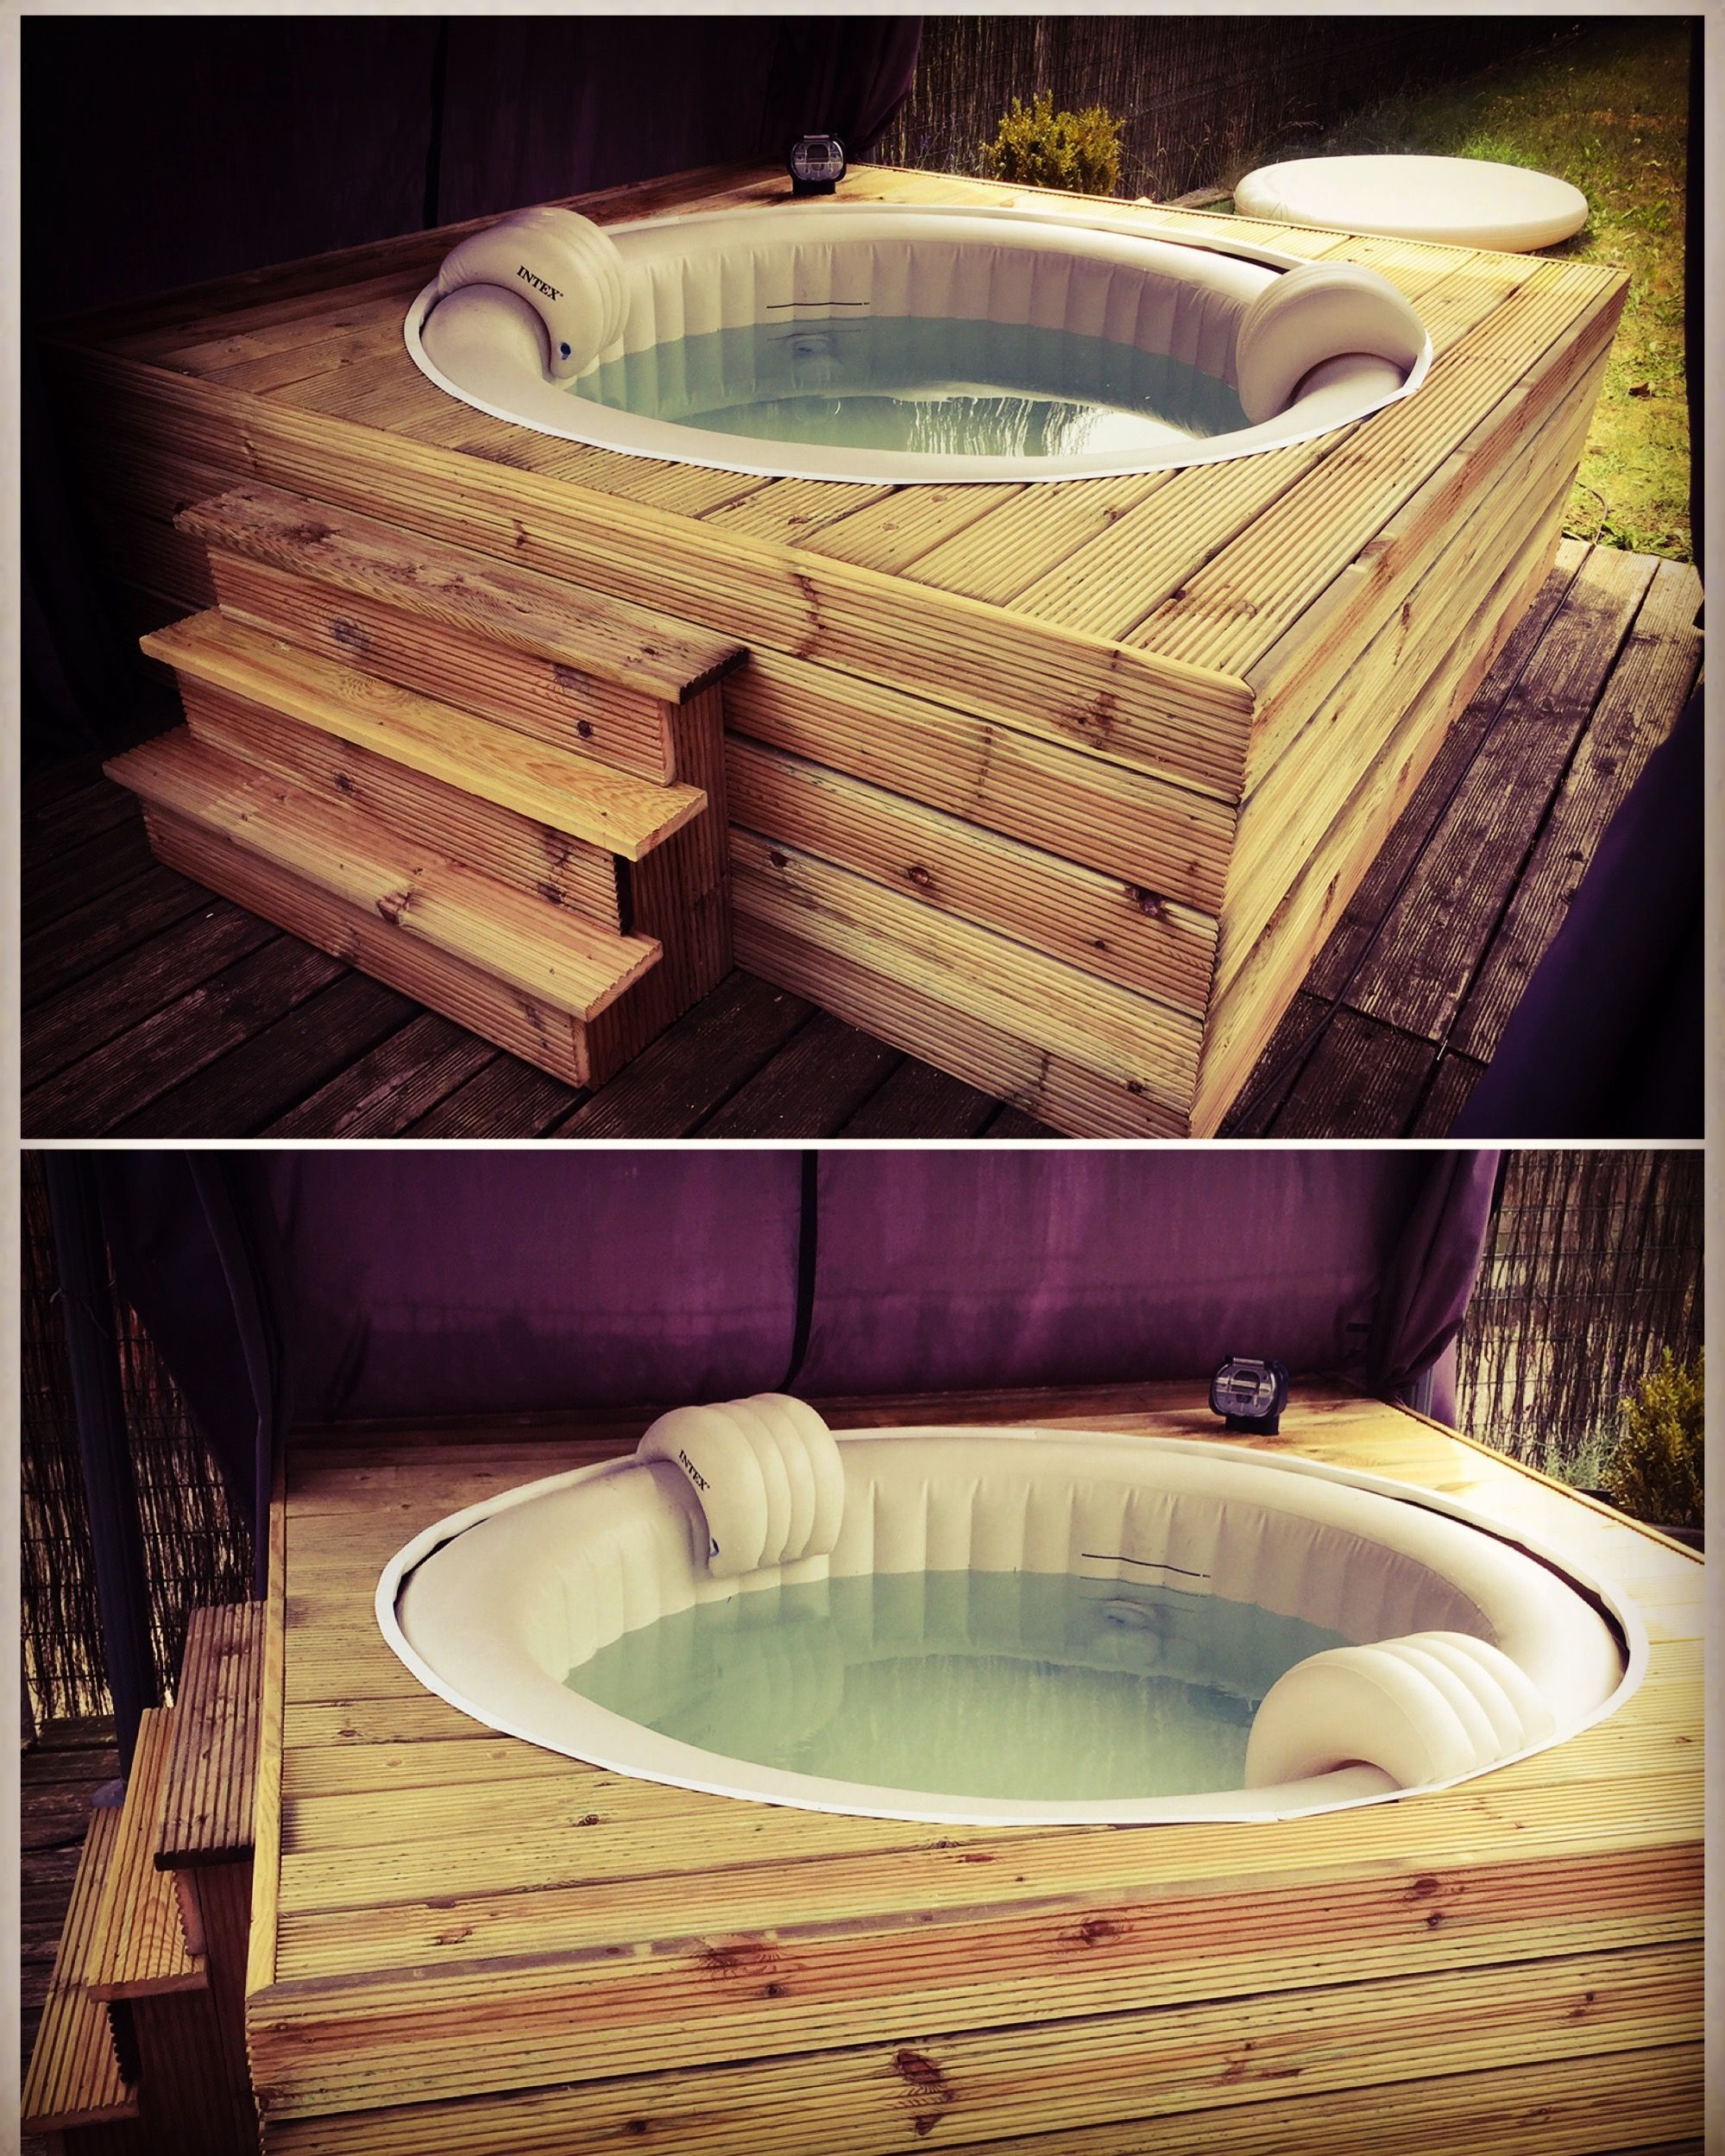 Spa Gonflable Habillage Bois Habillage Jacuzzi Gonflable Intex Fabrication D Un Habillage En